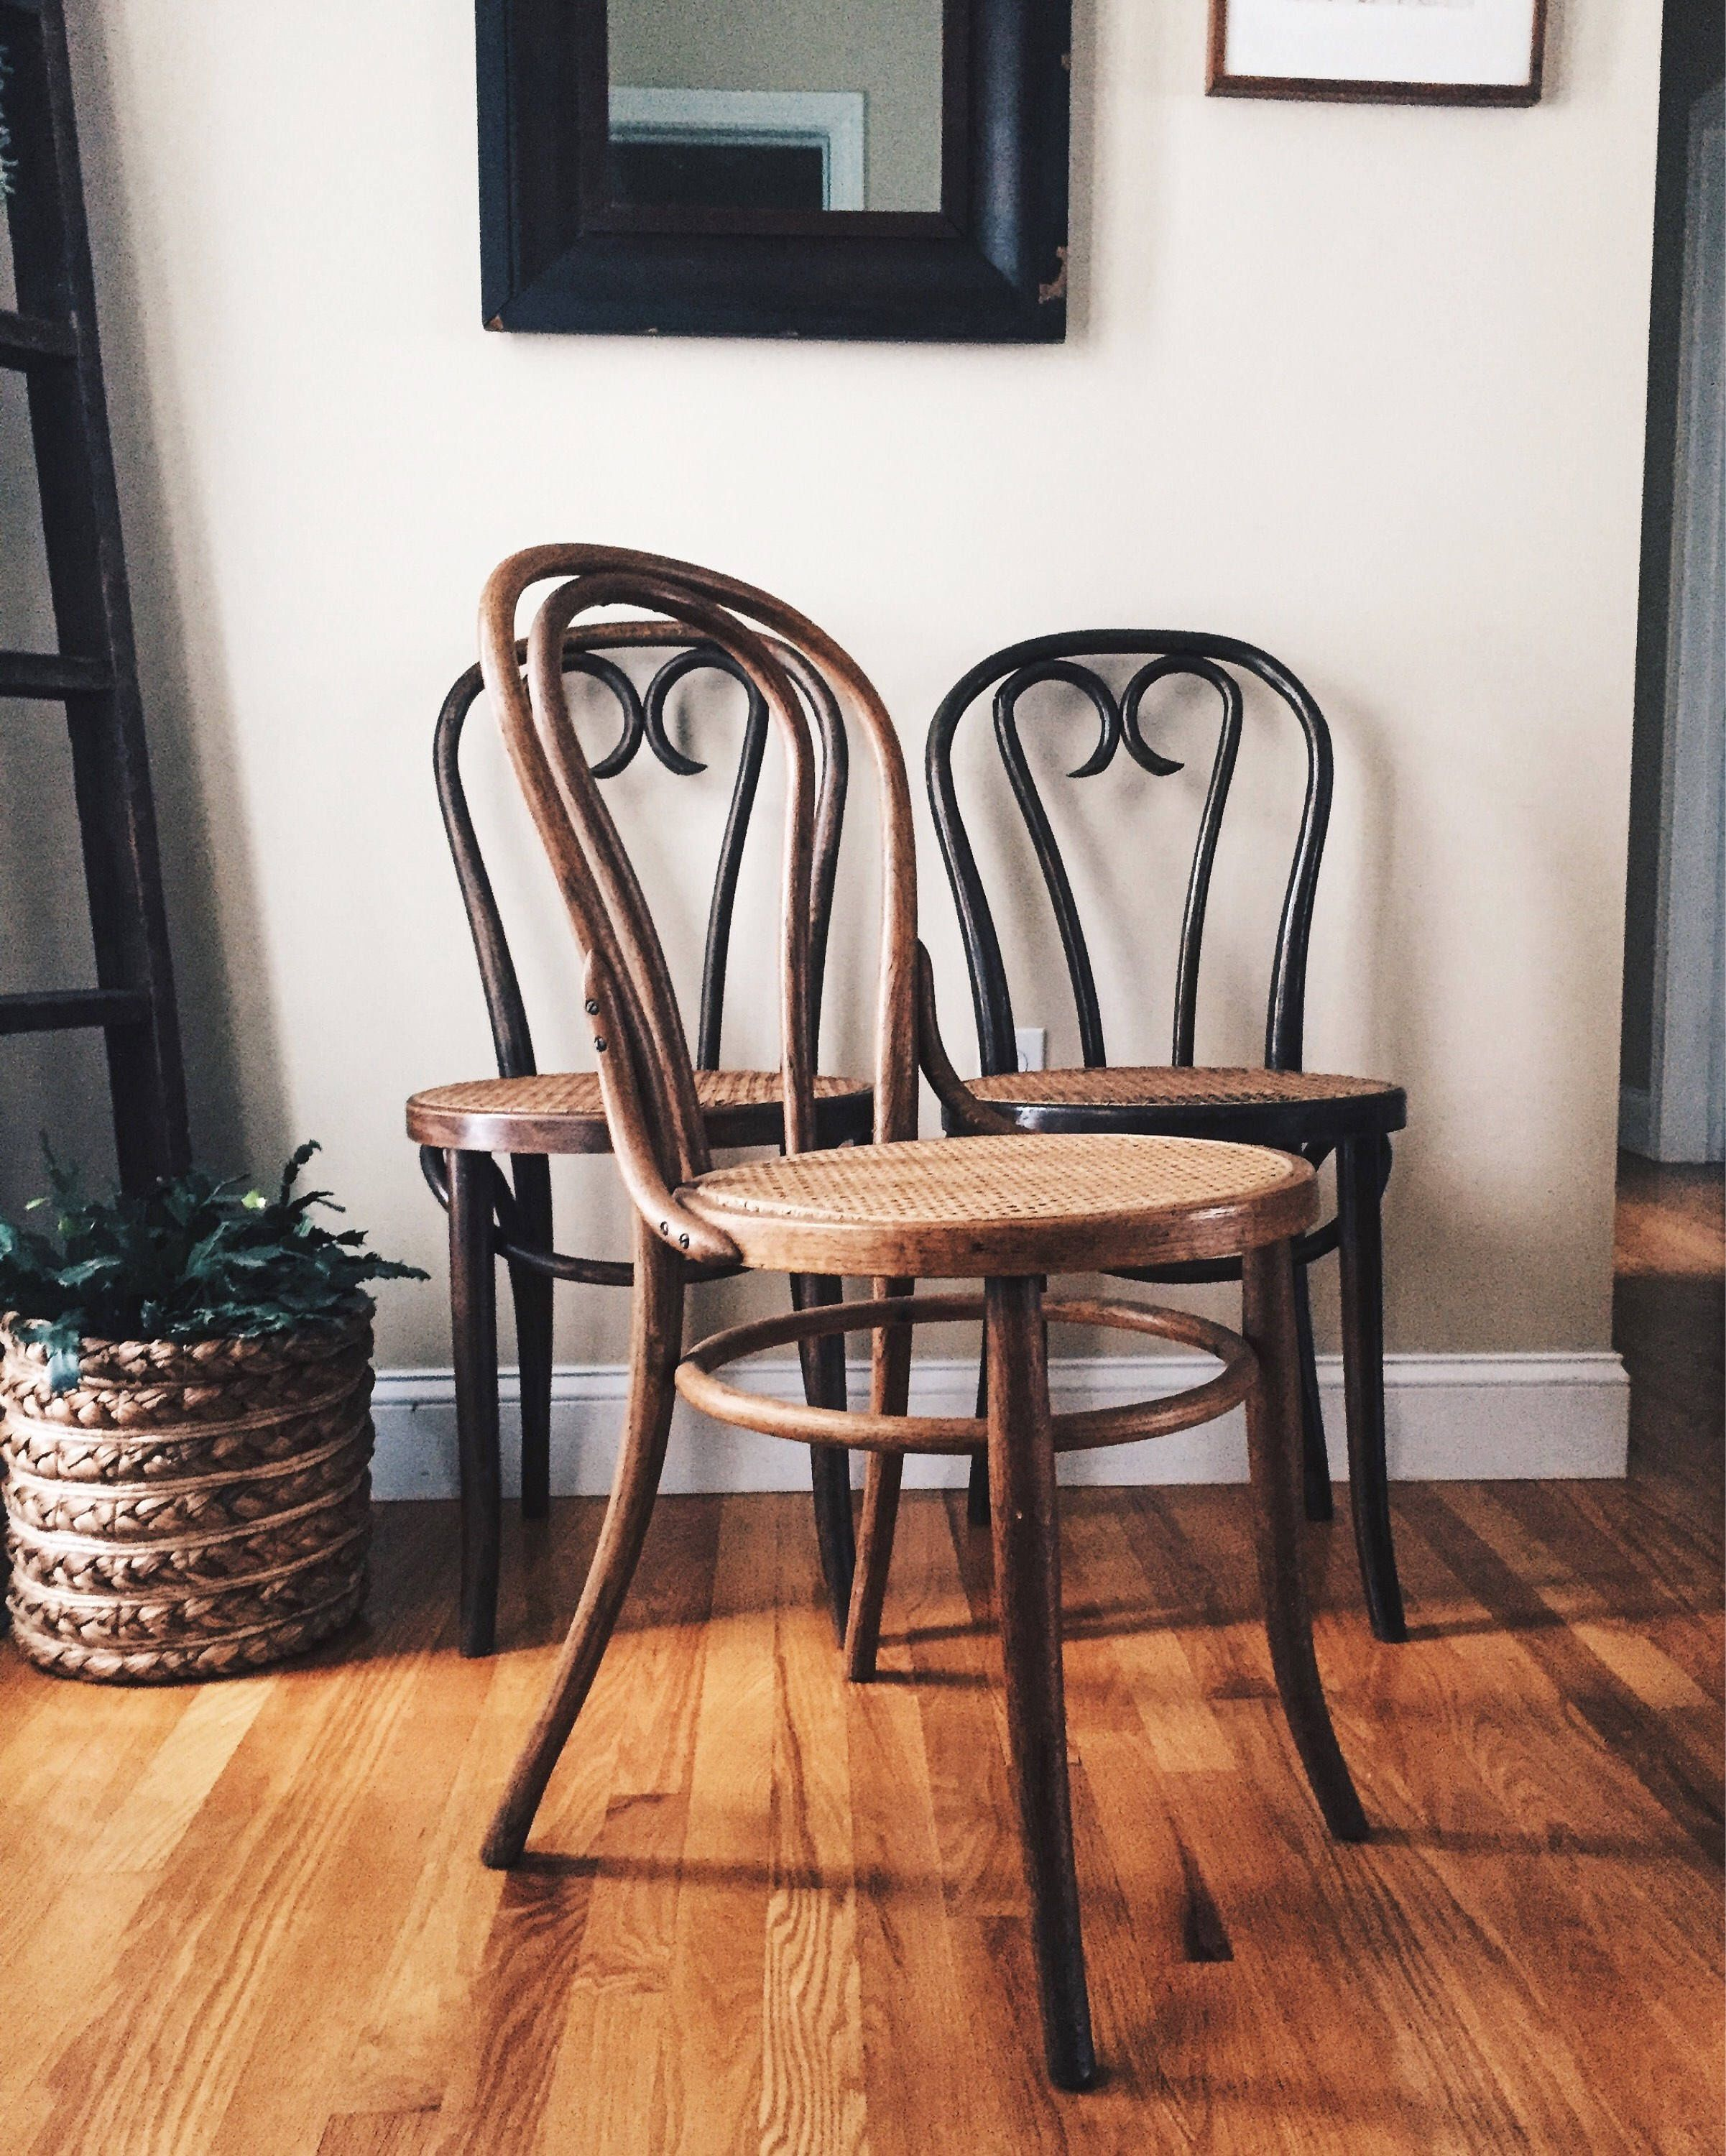 Antique thonet style bentwood chairs with cane seats antique wood